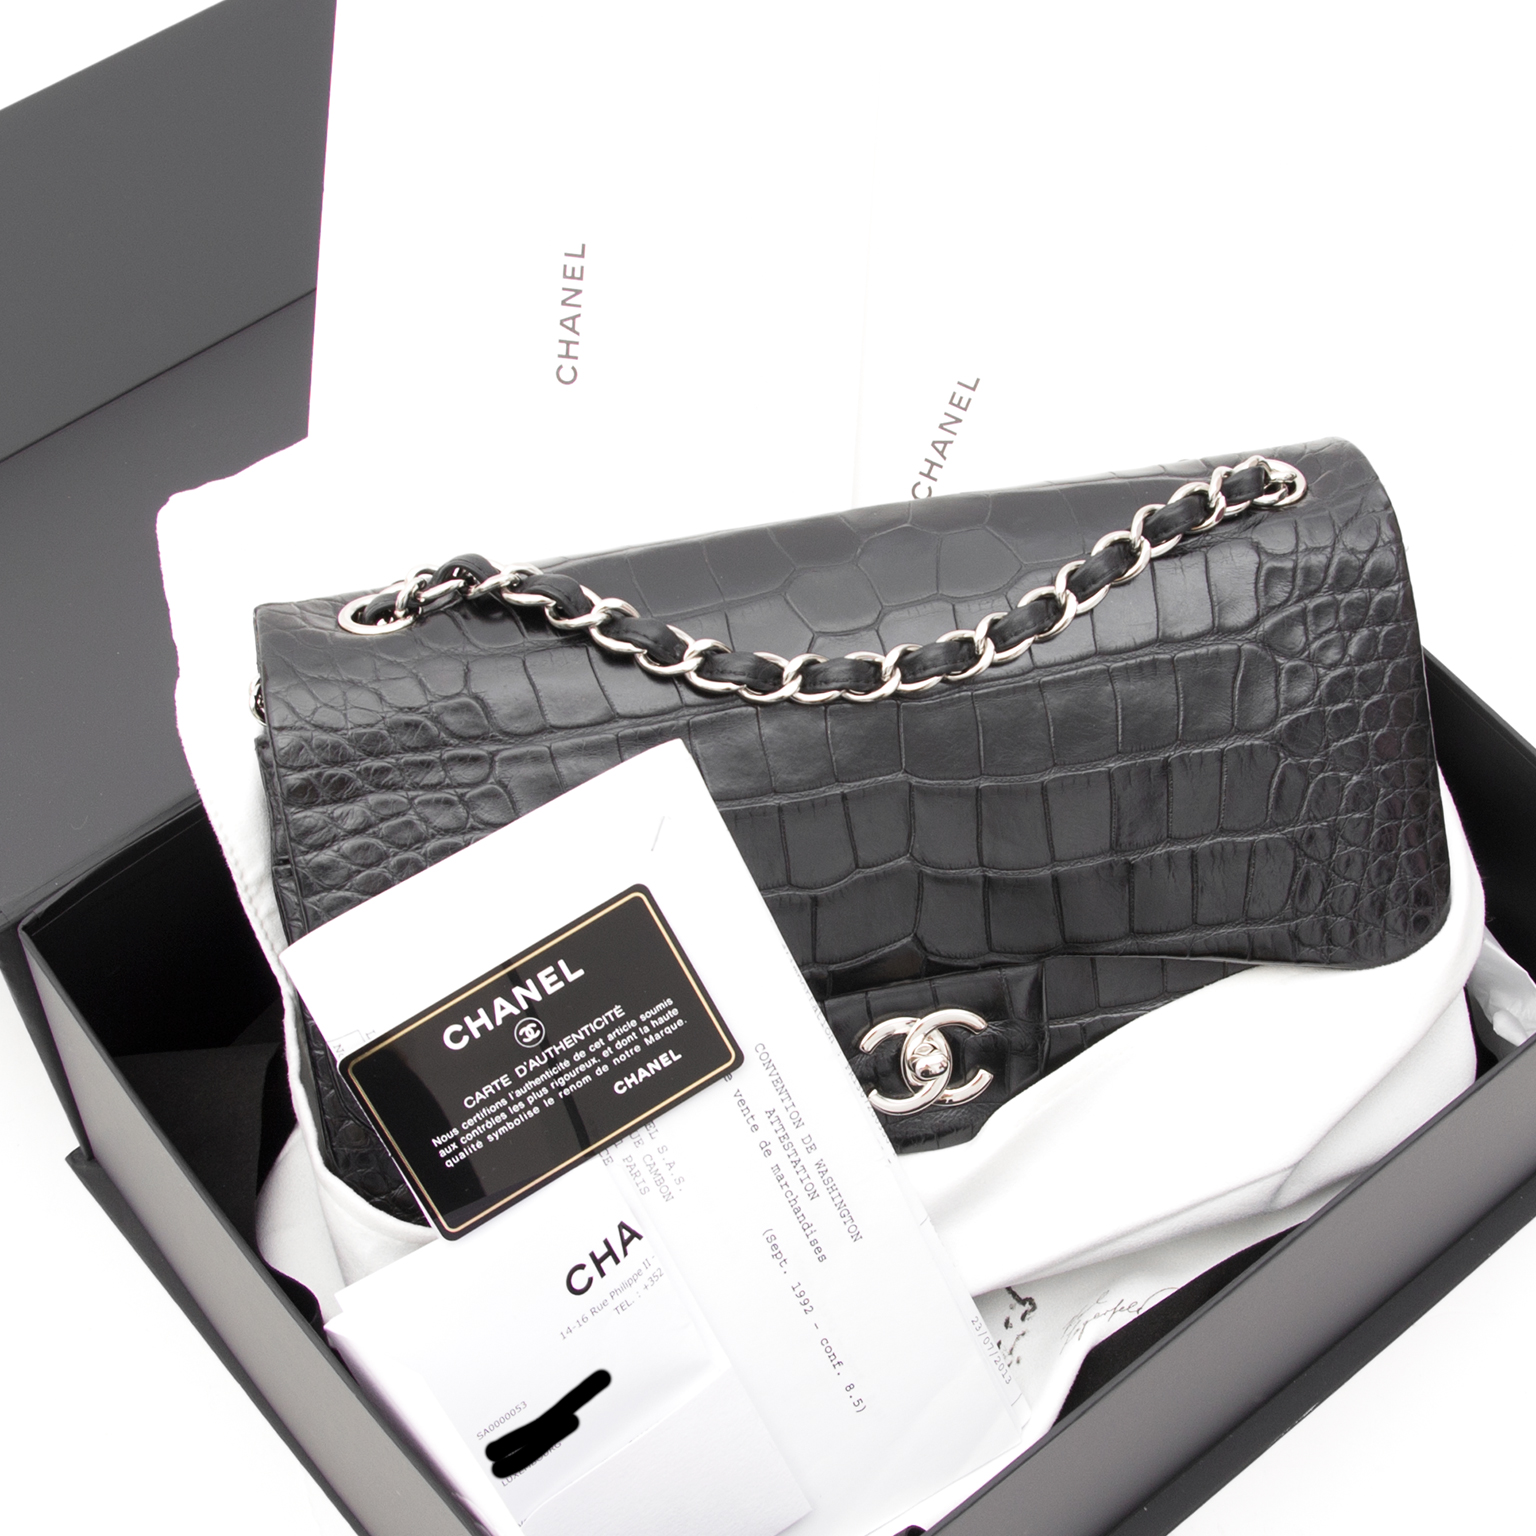 66a4704ce4ed28 Rare Chanel Alligator Jumbo Double Flap Black shop safe and secure  secondhand luxury bag chanel double flapbag like new worldwide shipping